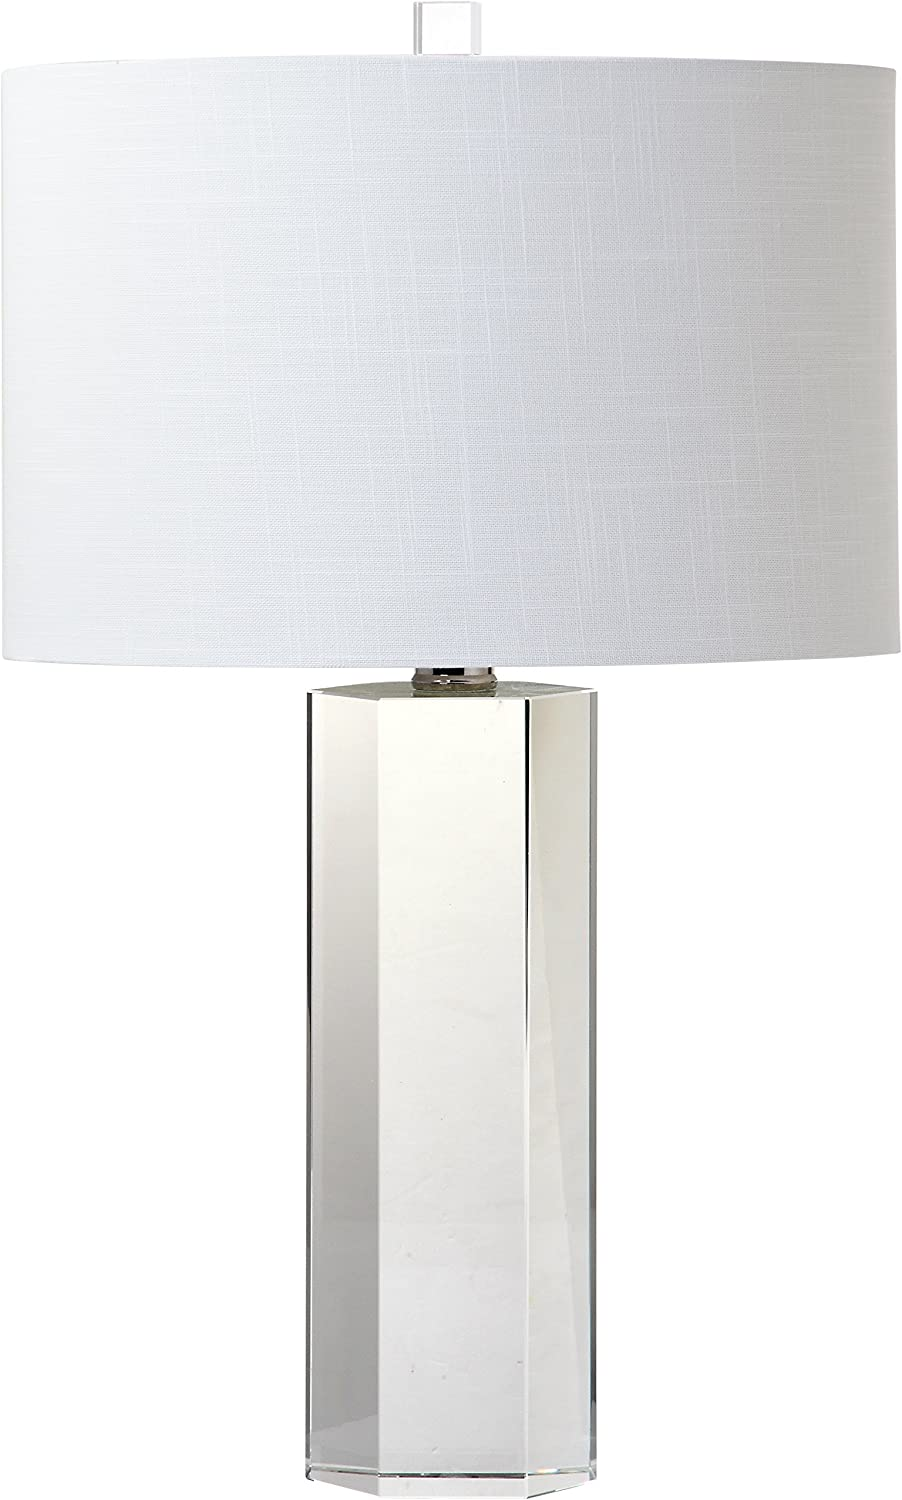 "Decorator's Lighting 15333 Hexagonal Crystal Table Lamp, 25"" H"